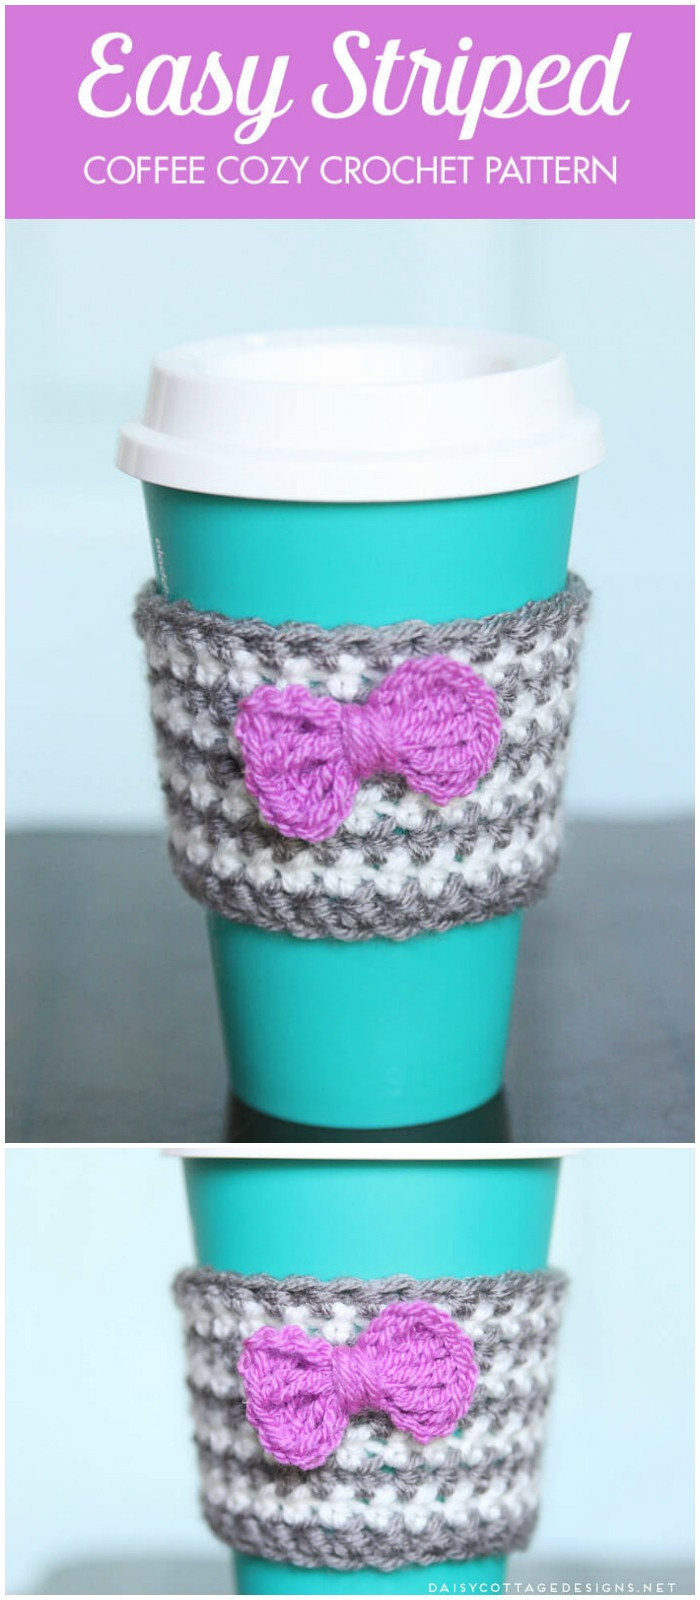 Crochet Coffee Cup Cozy Fresh 8 Crochet Cozy Patterns Free Crochet Patterns • Diy Home Of Crochet Coffee Cup Cozy Elegant Basketweave Cup Cozy Crochet Pattern with